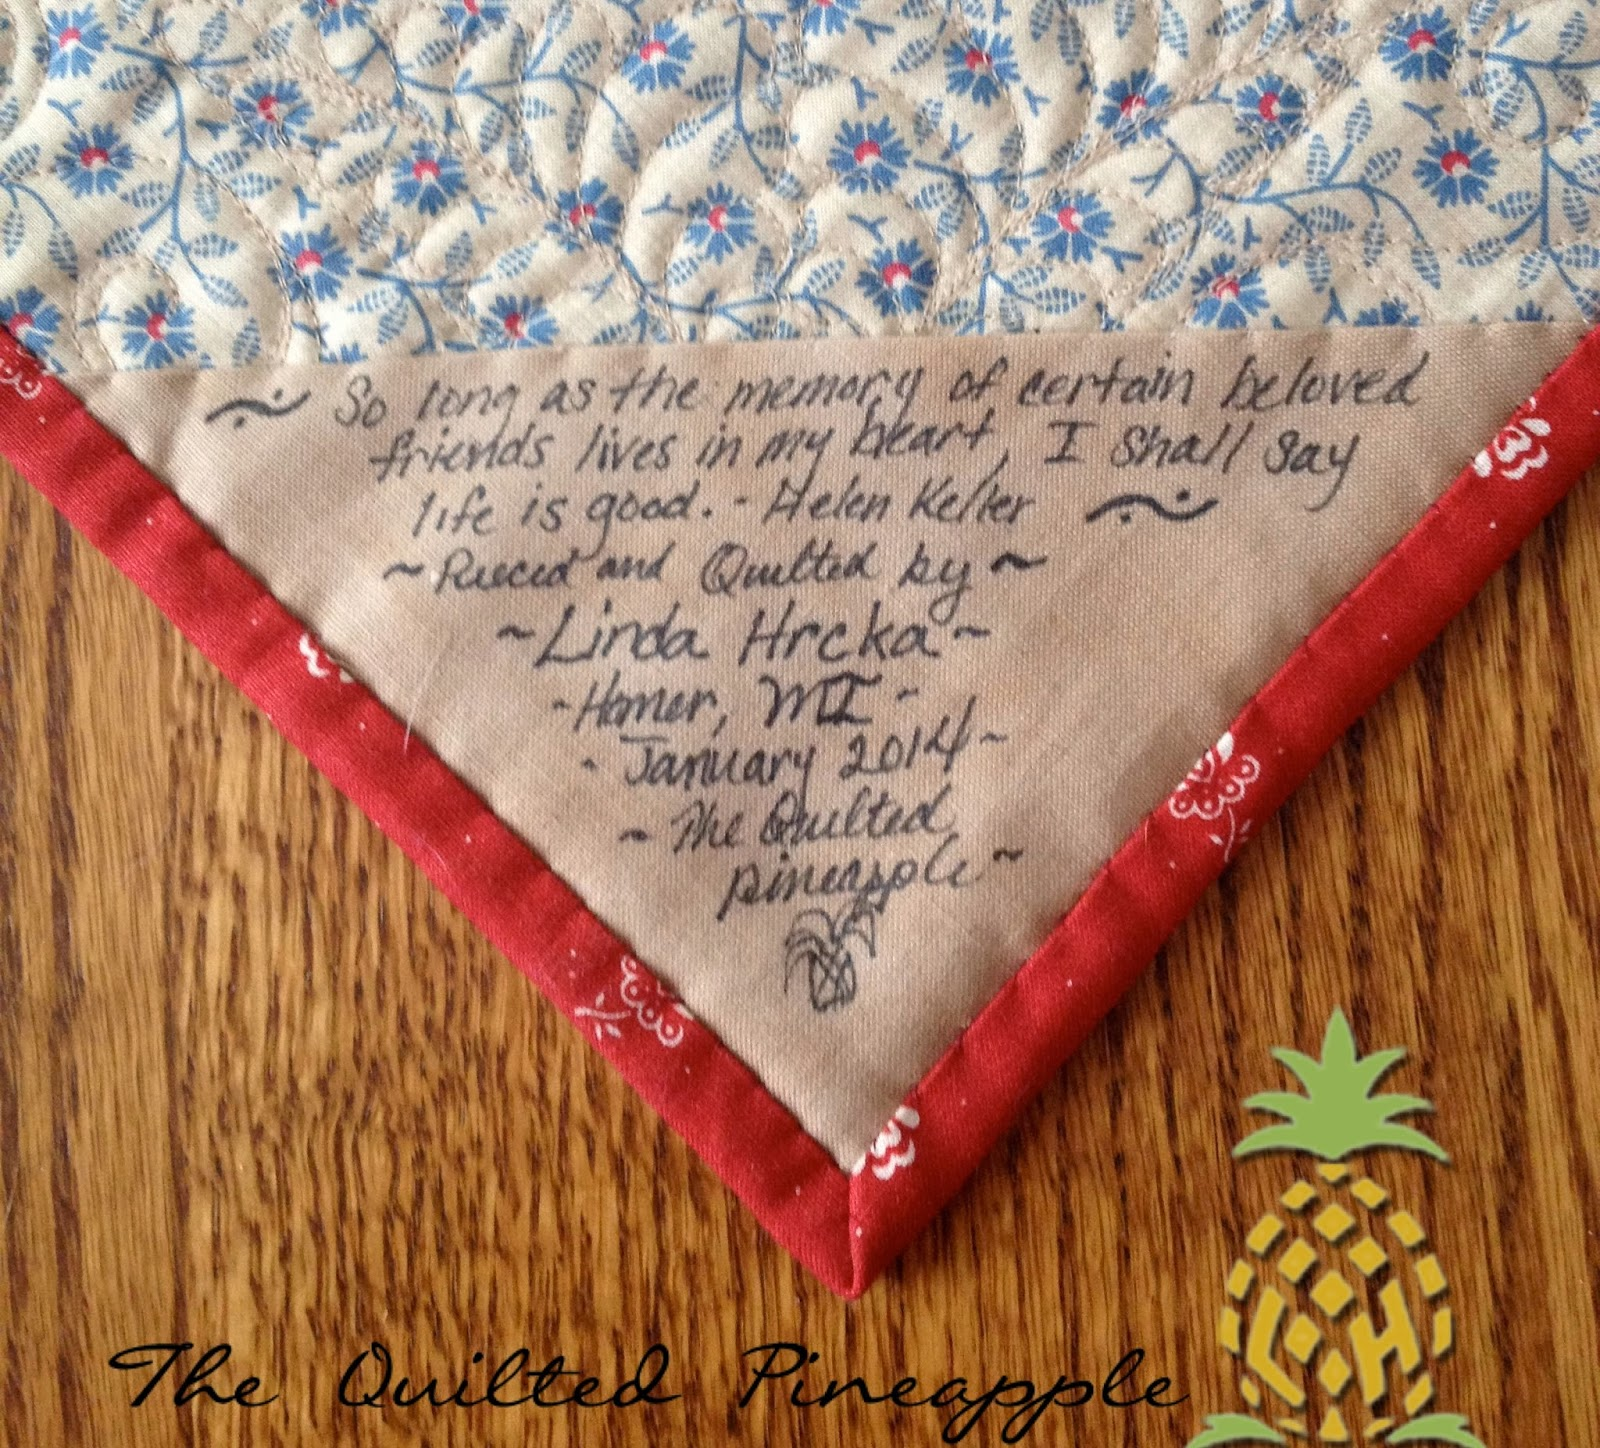 THE QUILTED PINEAPPLE: What A Beautiful Day